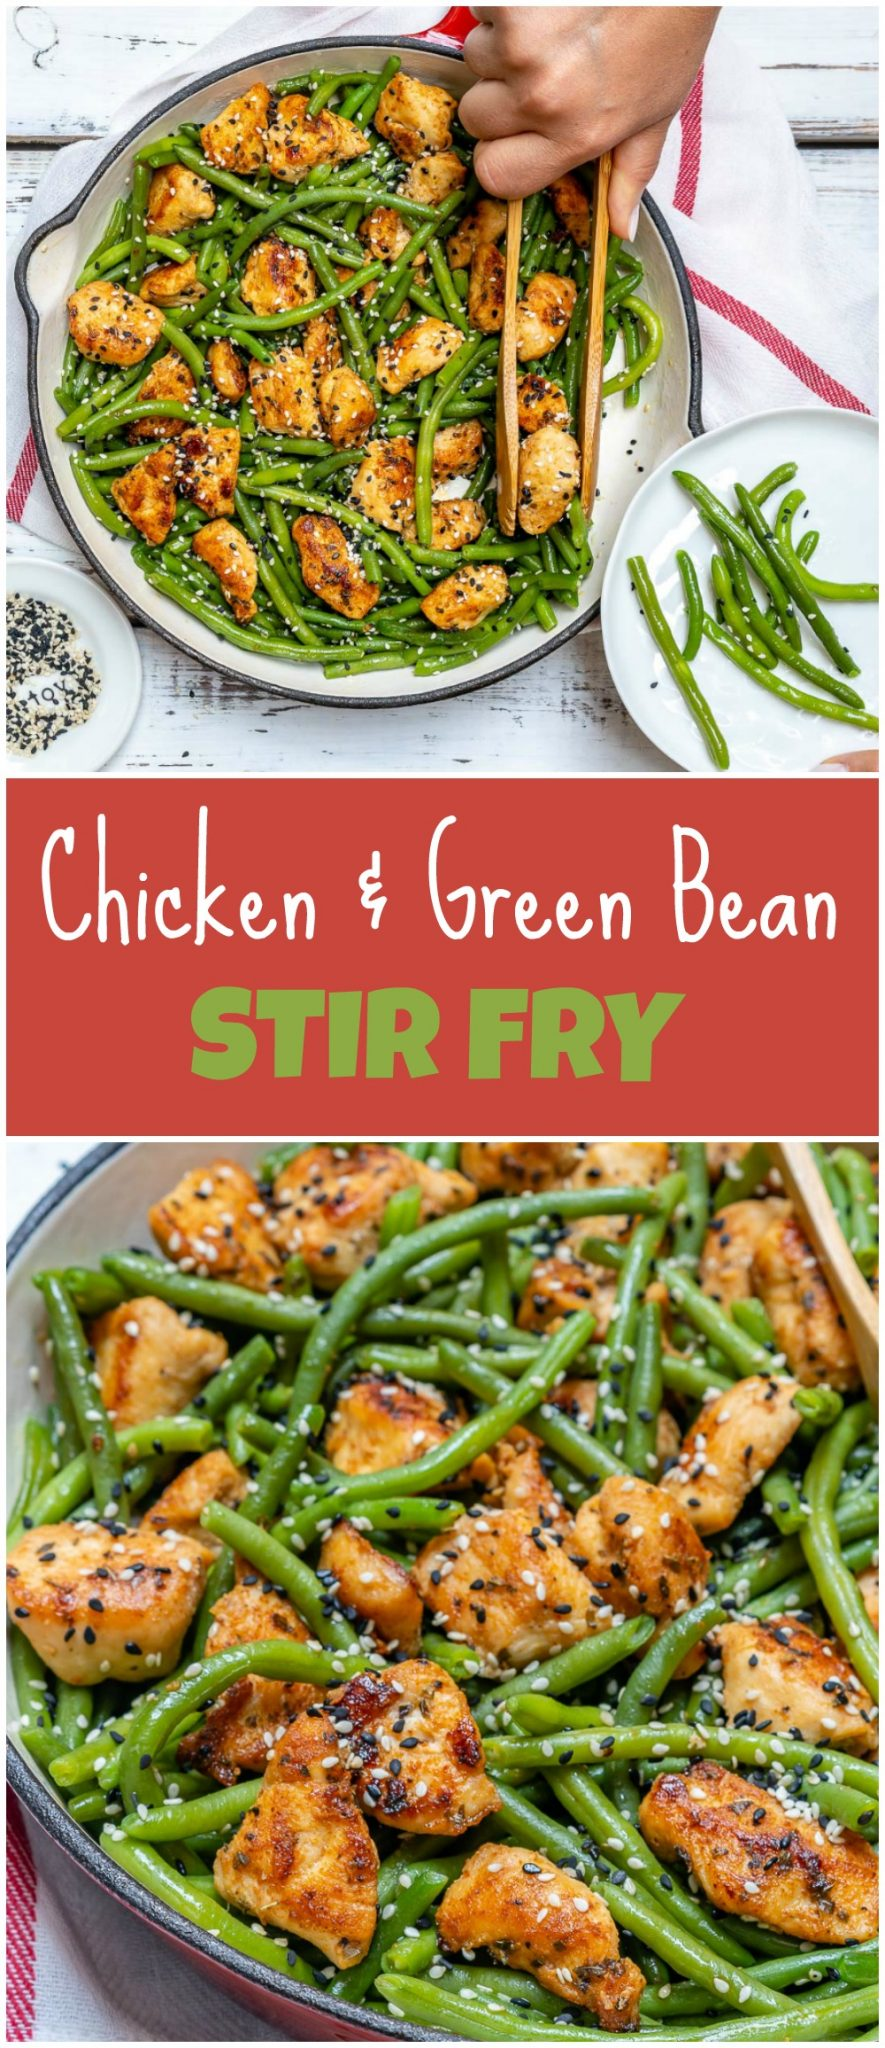 Chicken and Green Bean Stir Fry Clean Food Recipe